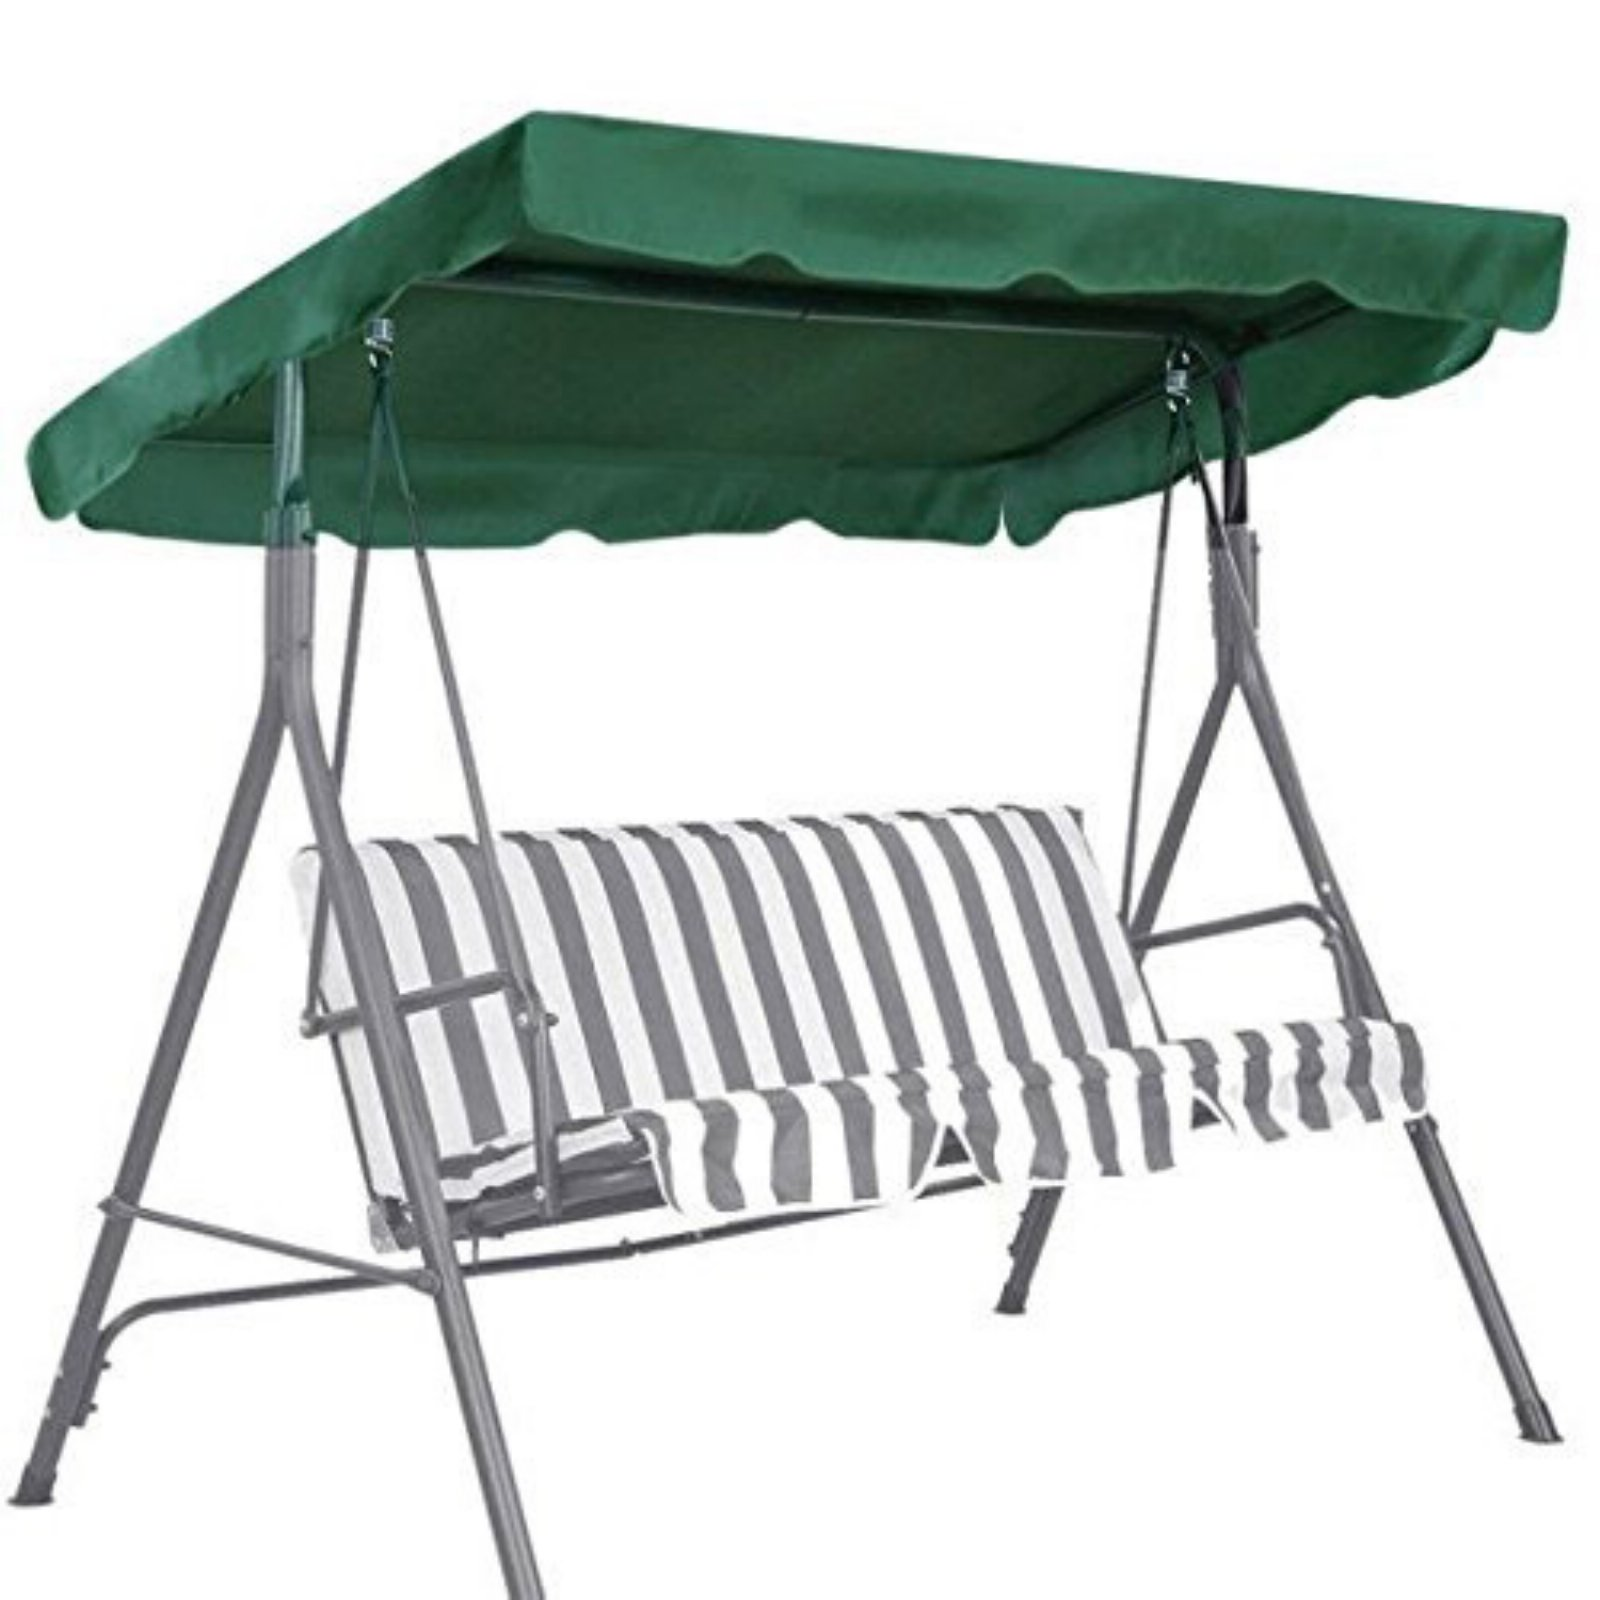 Sunrise Outdoor Patio Swing Canopy Replacement Top   Walmart.com